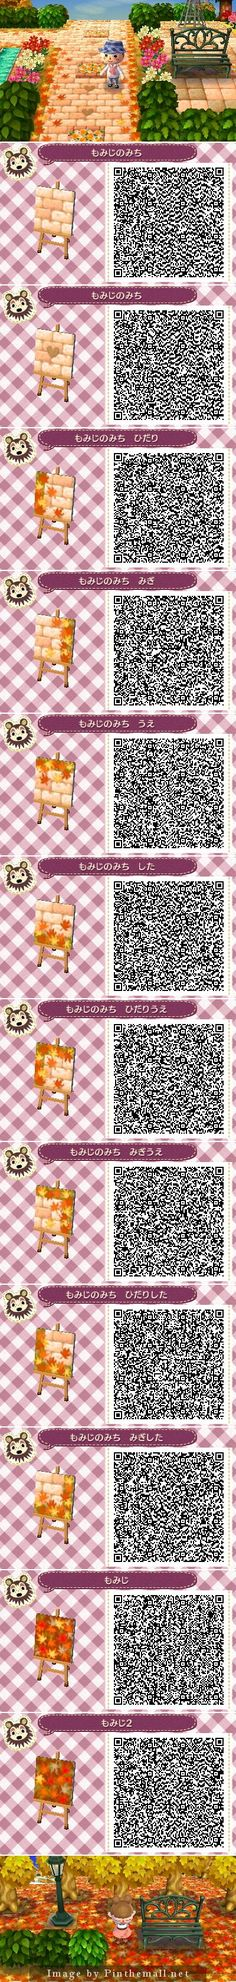 So here's all the pathway patterns for fall! Wish I could do that to my town, but I'm lazy and impatient.